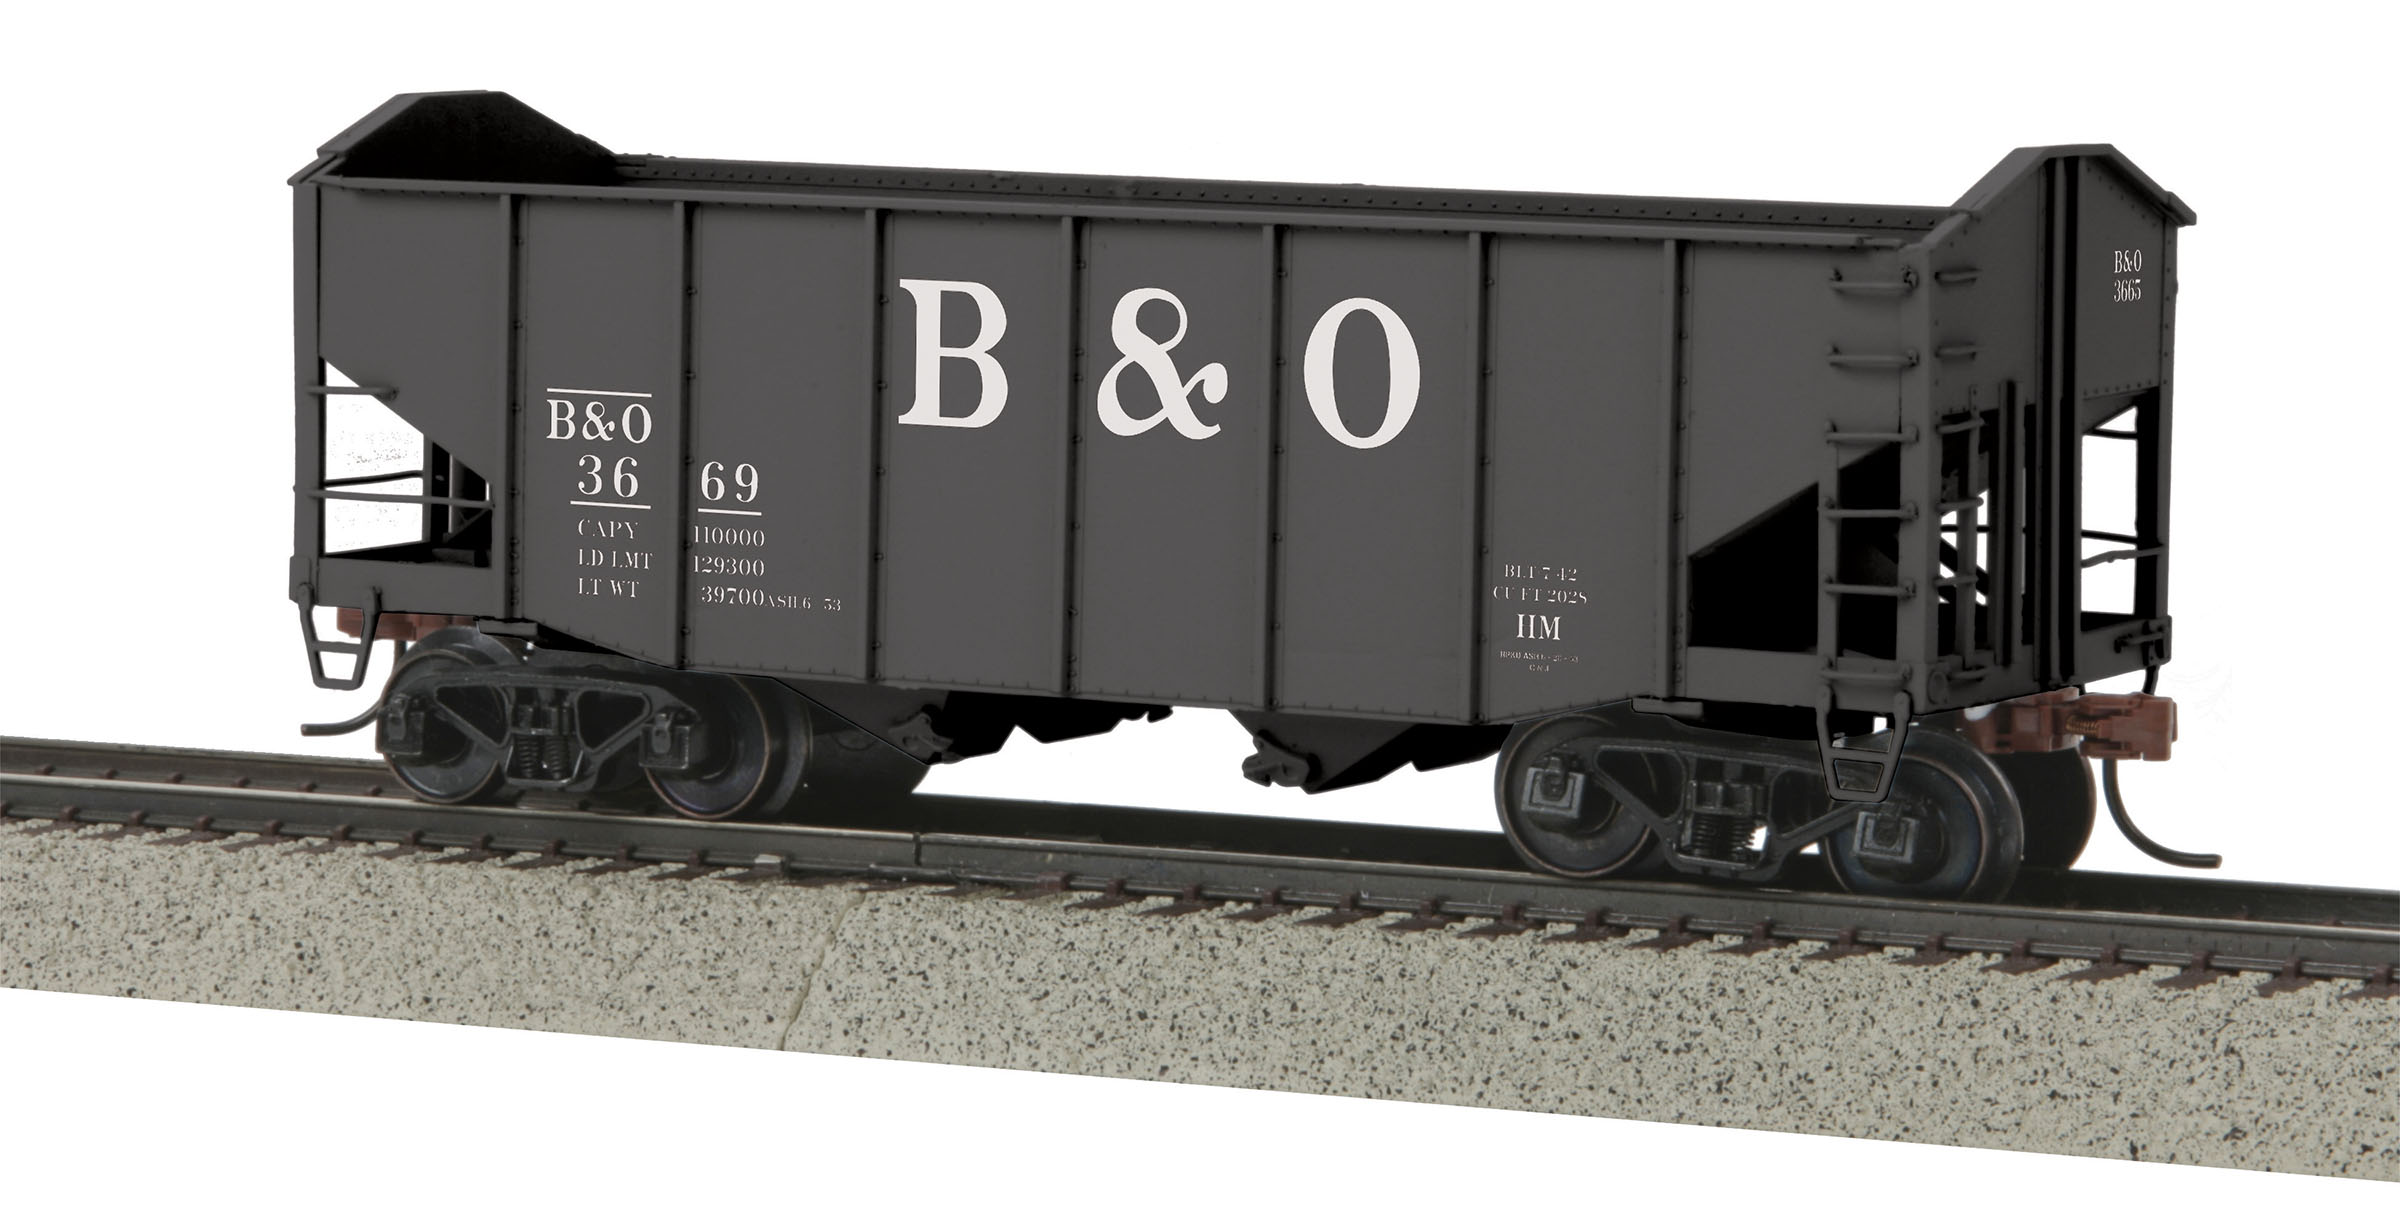 MTH 3575067 2Bay Fish Belly Hopper Car Hi-Rail Wheel B&O #3669